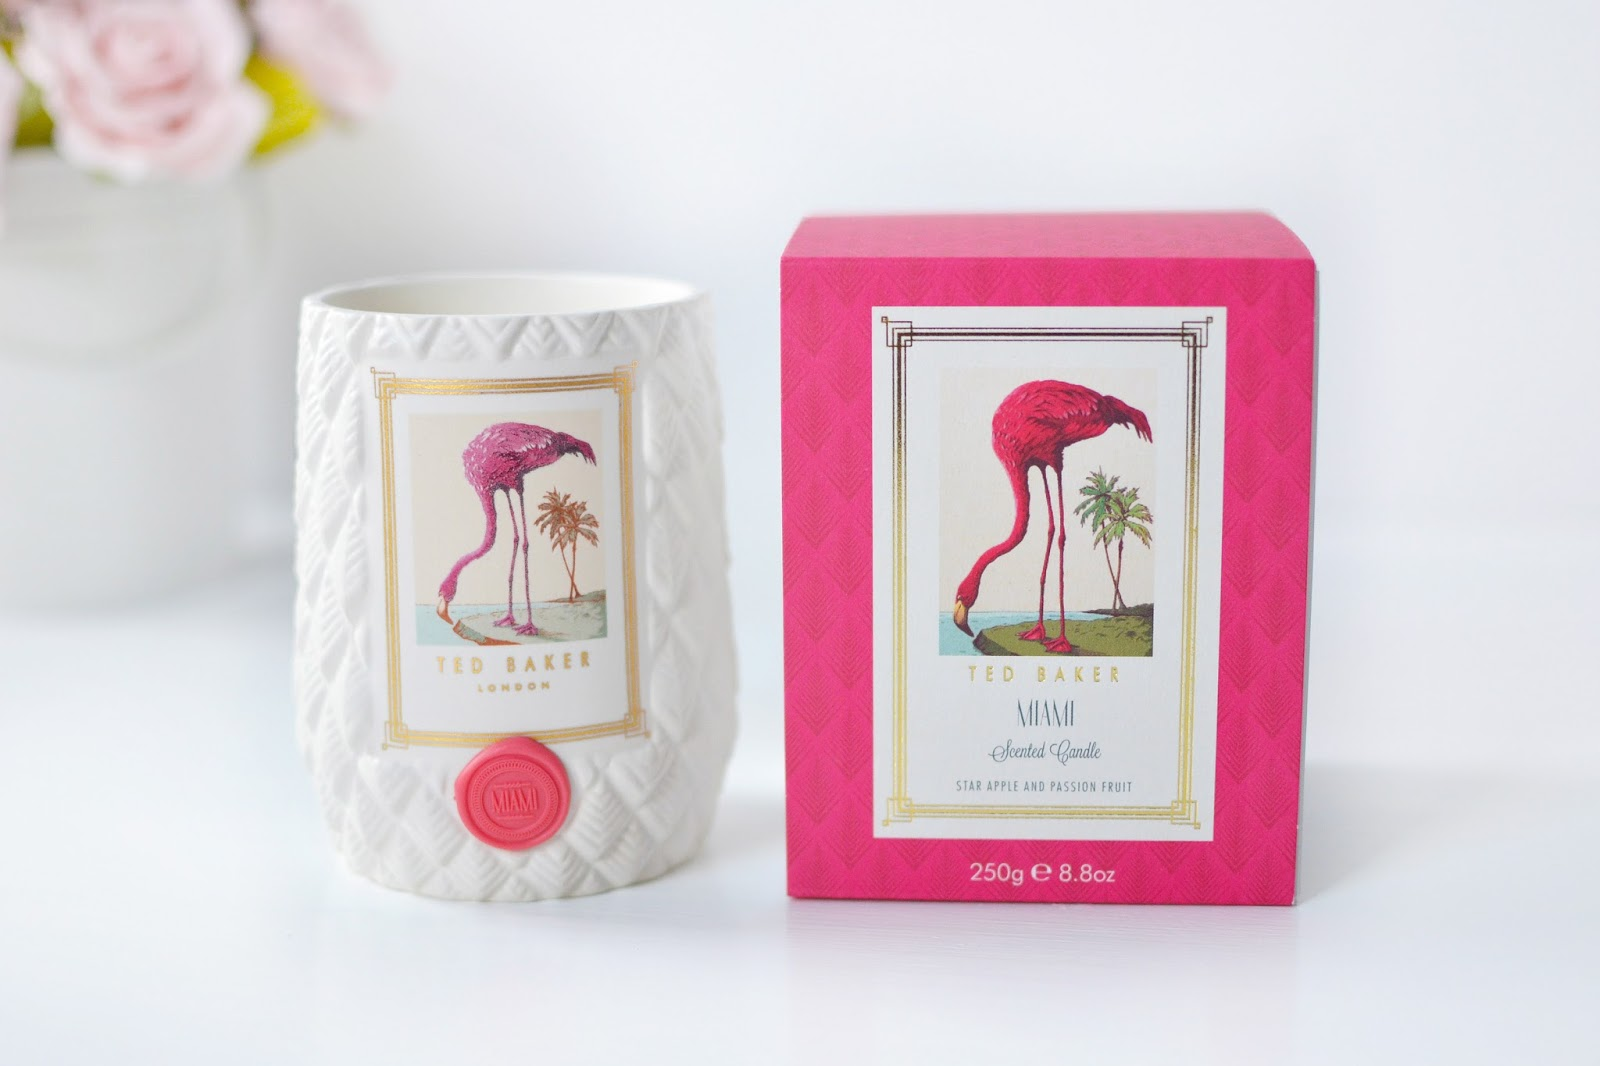 ted baker home fragrance, ted baker candle,